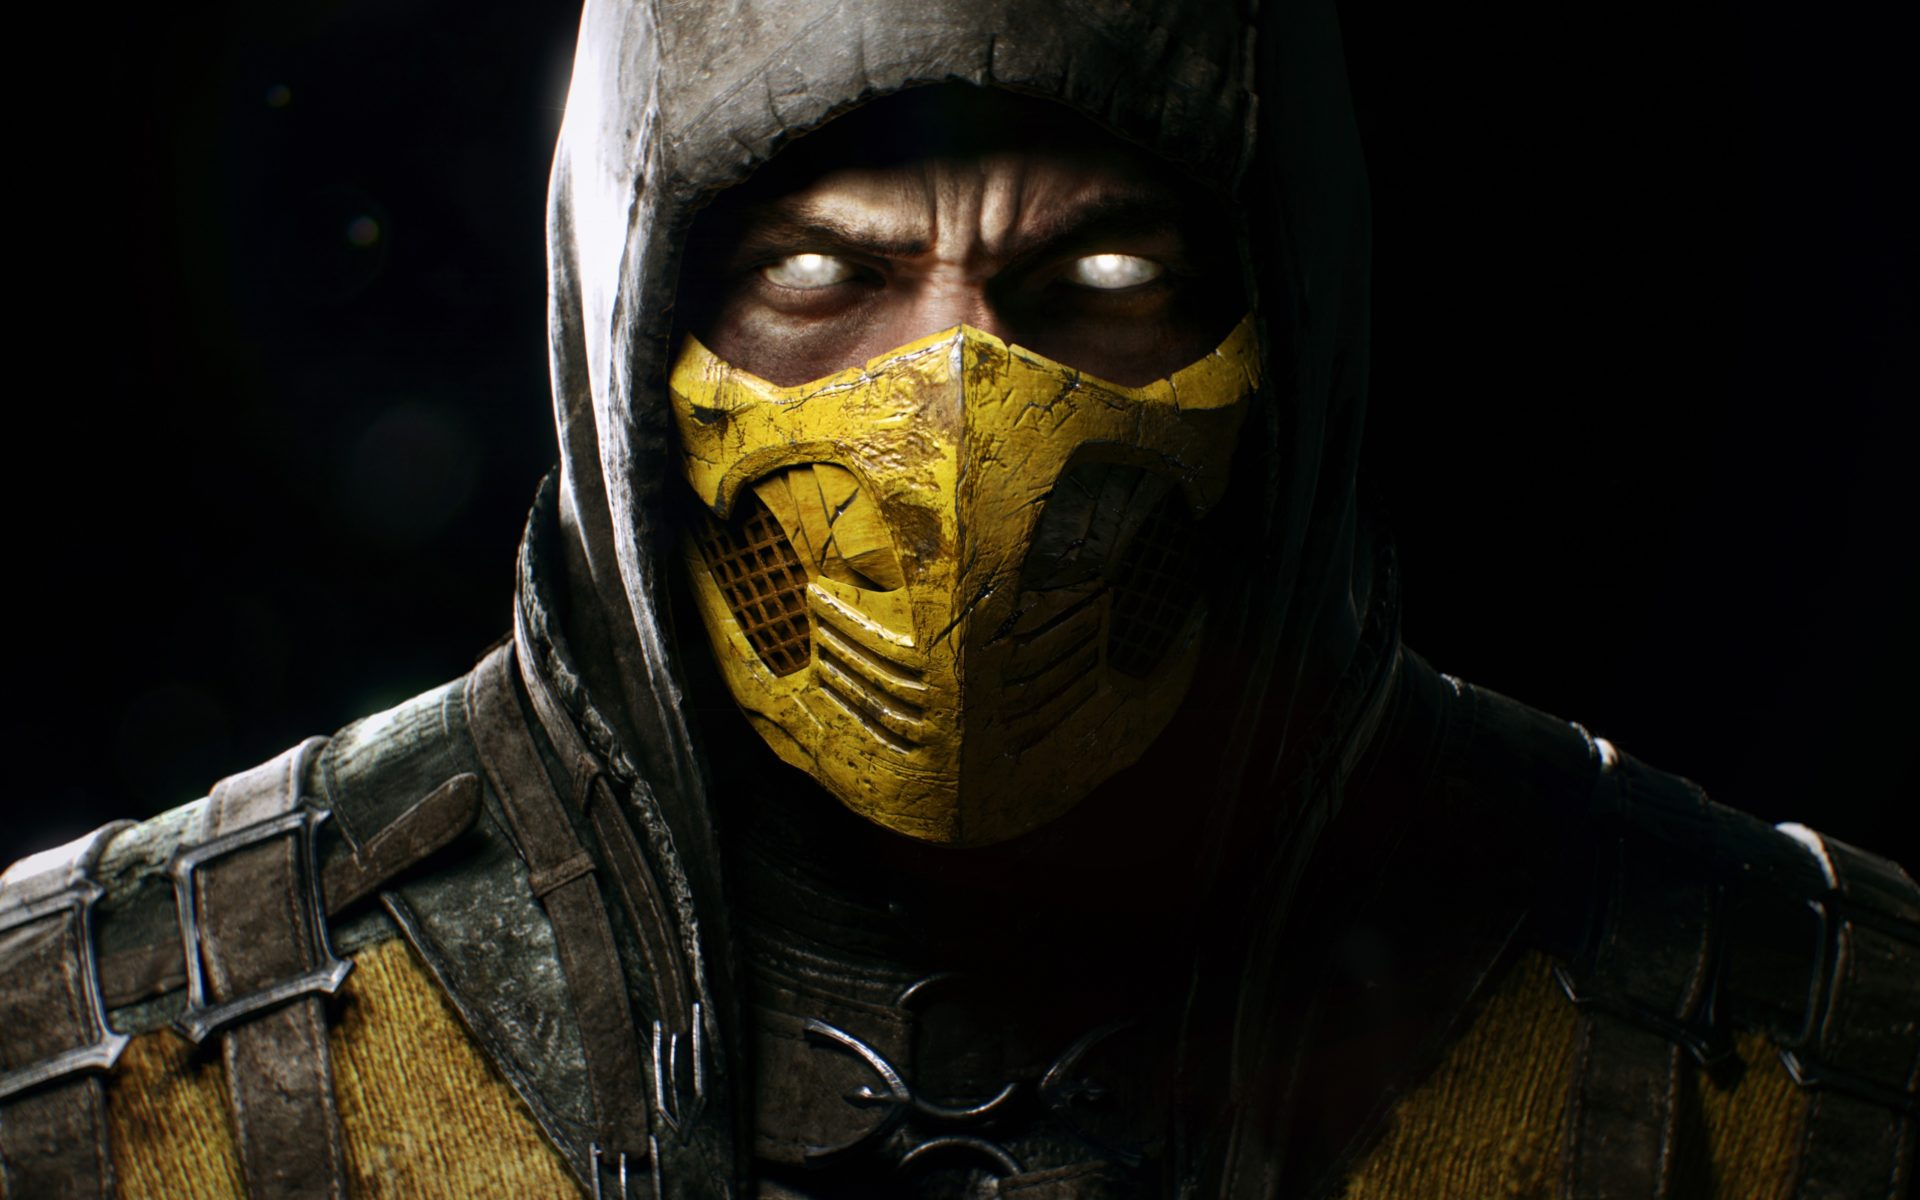 Mortal Kombat X Scorpio 3d Cool Video Games Wallpapers – HD Wallpapers Backgrounds Desktop, iphone & Android Free Download